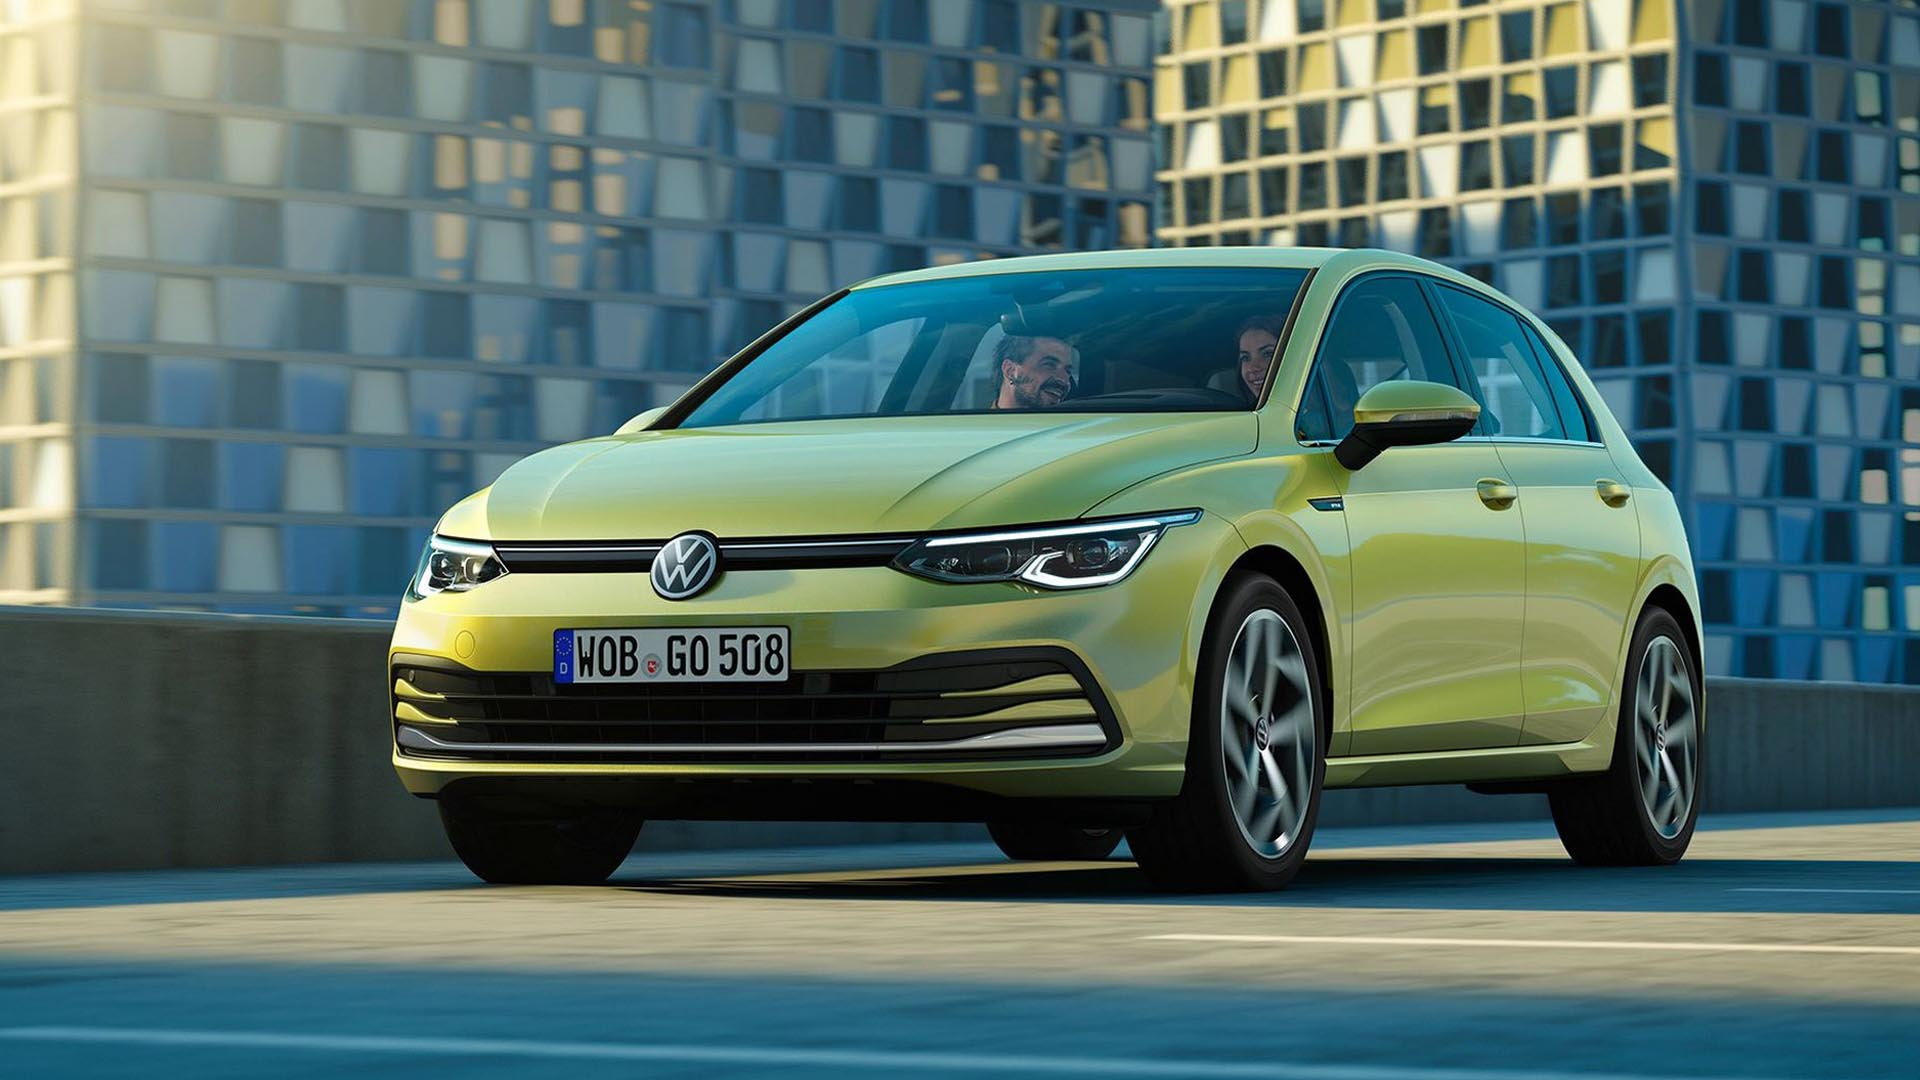 Official Images Of The MK8 Volkswagen Golf Leaked Ahead Of Today's Unveil